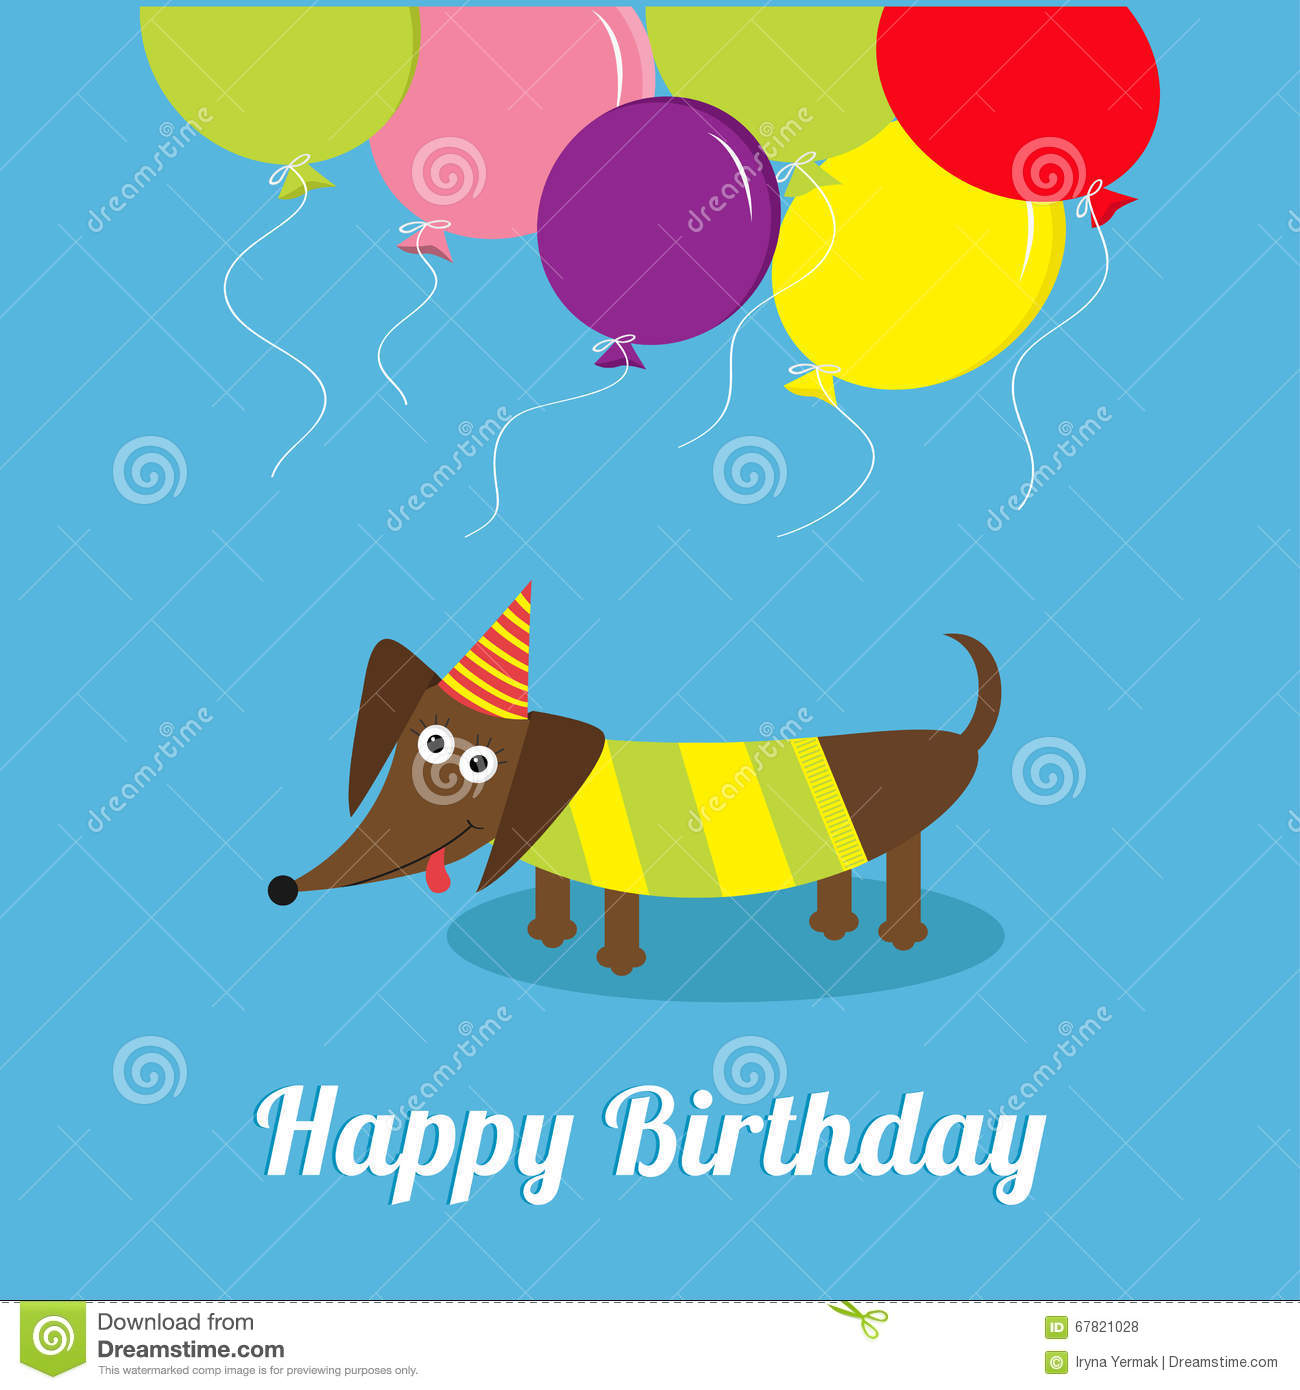 Dachshund Dog With Tongue Striped Shirt Cute Cartoon Character Balloons And Hat Happy Birthday Greeting Card Flat Design Vector Illustration